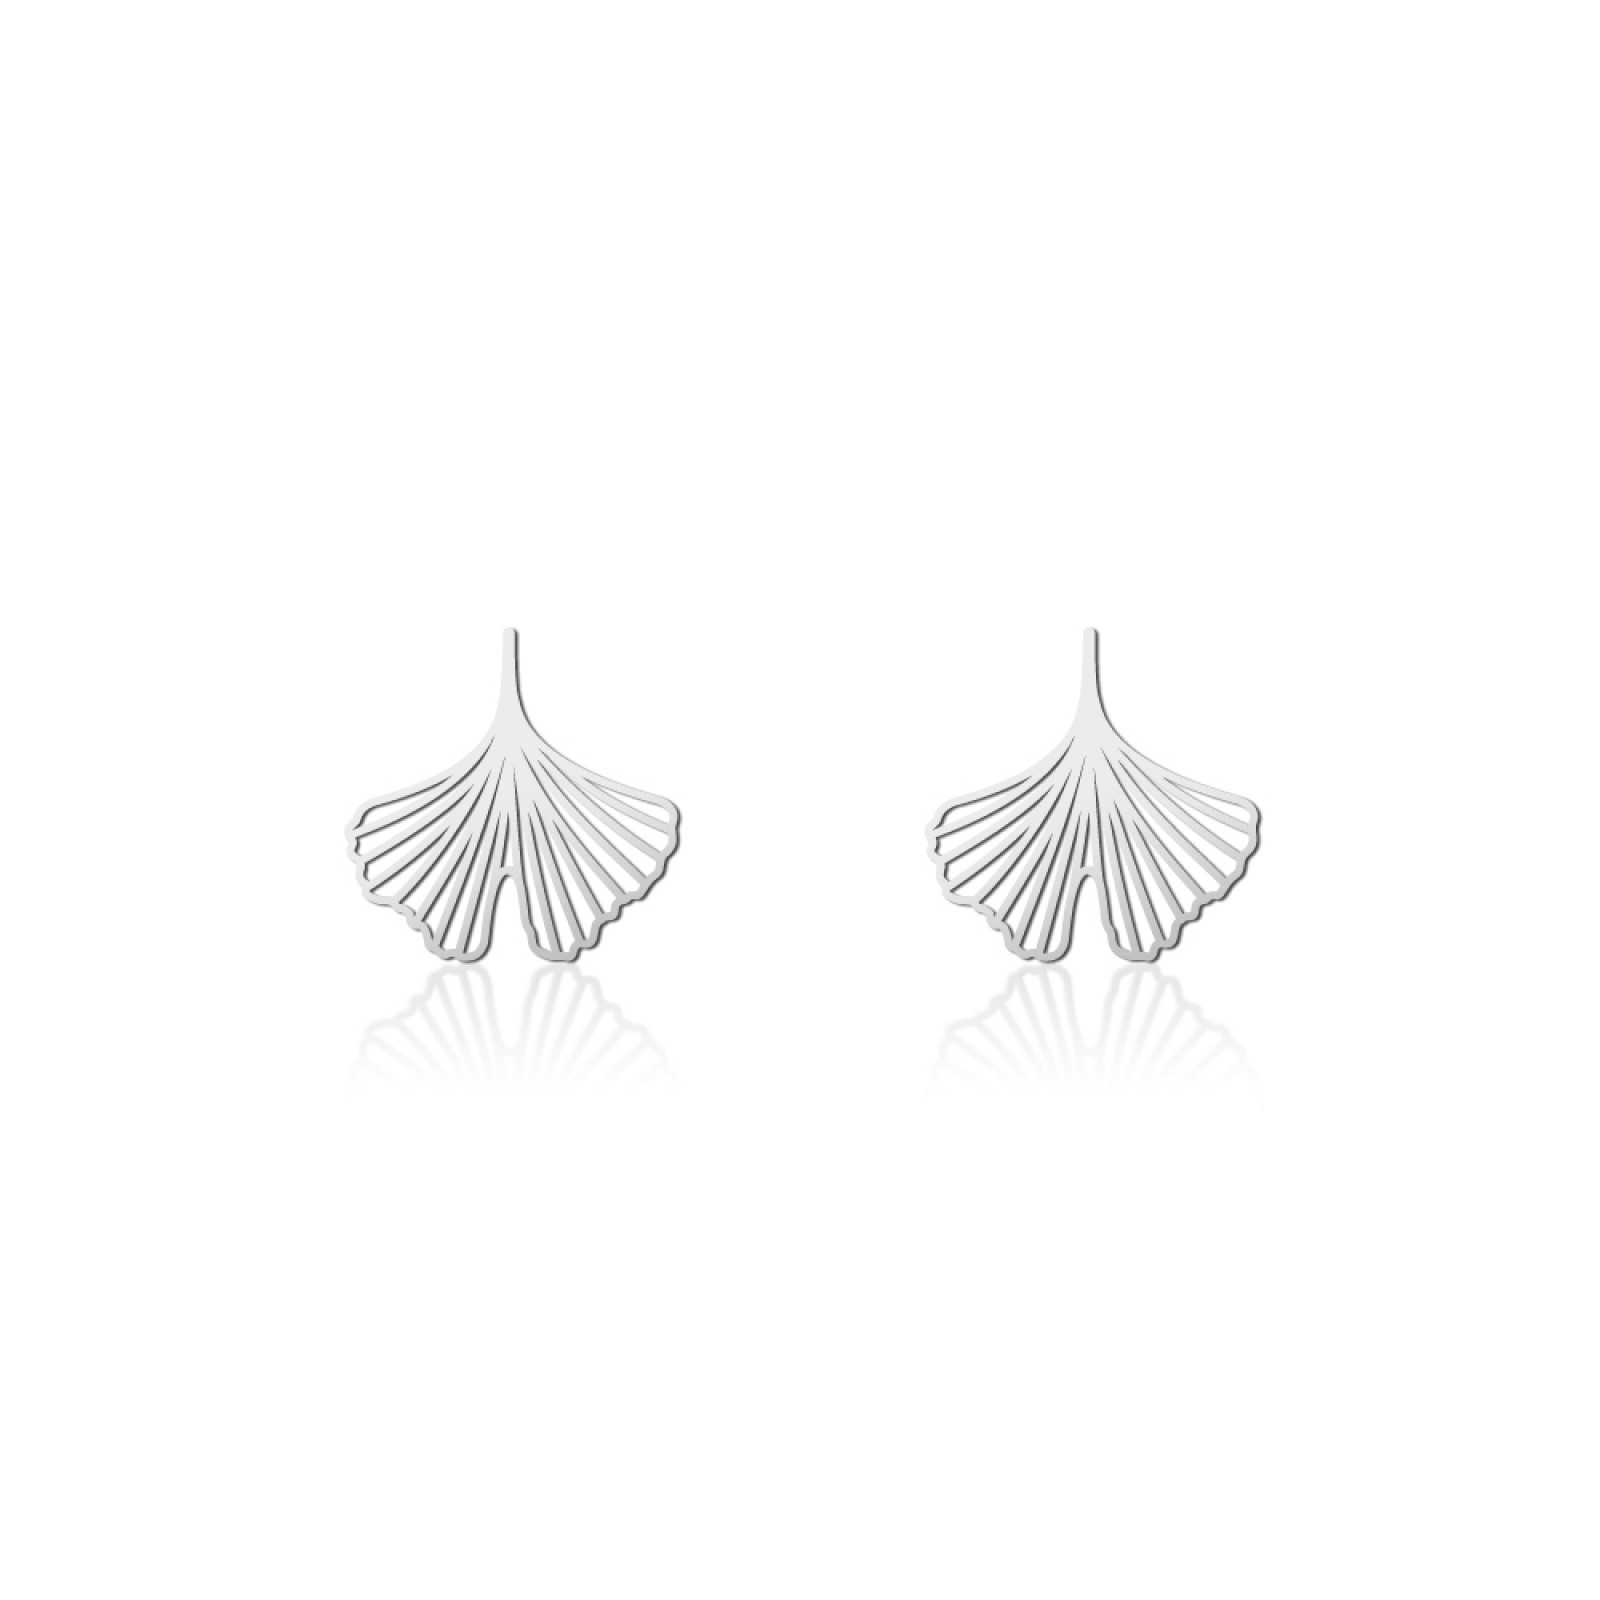 Ginkgo Earrings XS (Silver) - Moorigin